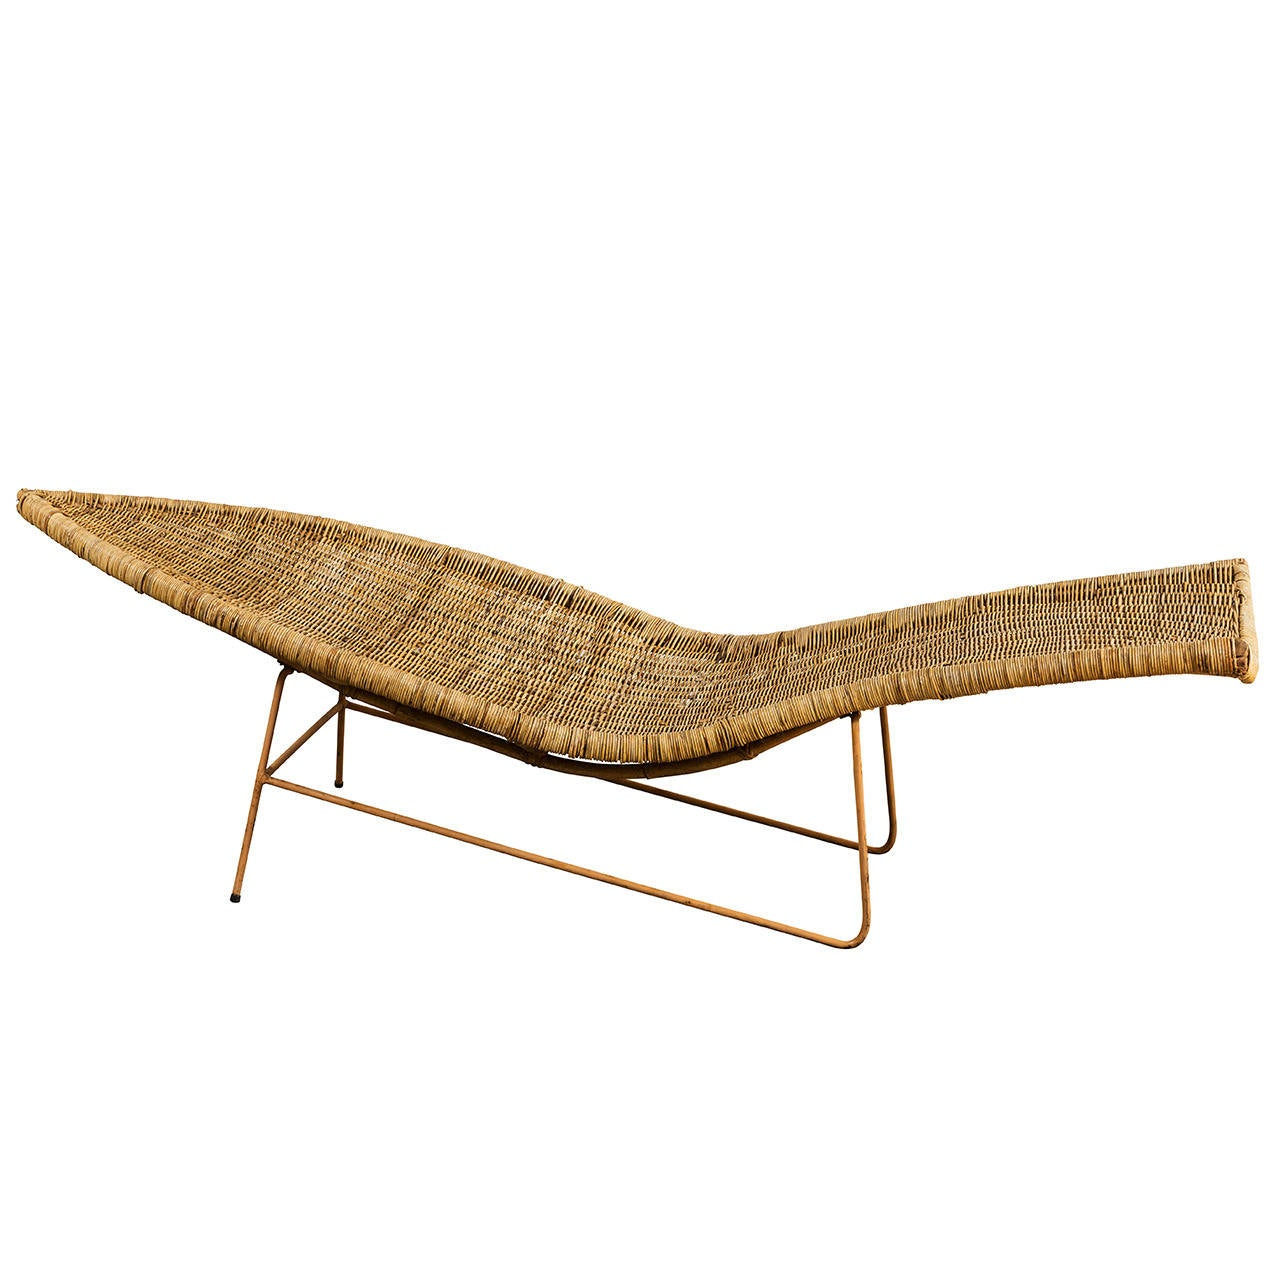 Wicker fish chaise at 1stdibs for Chaise longue rattan